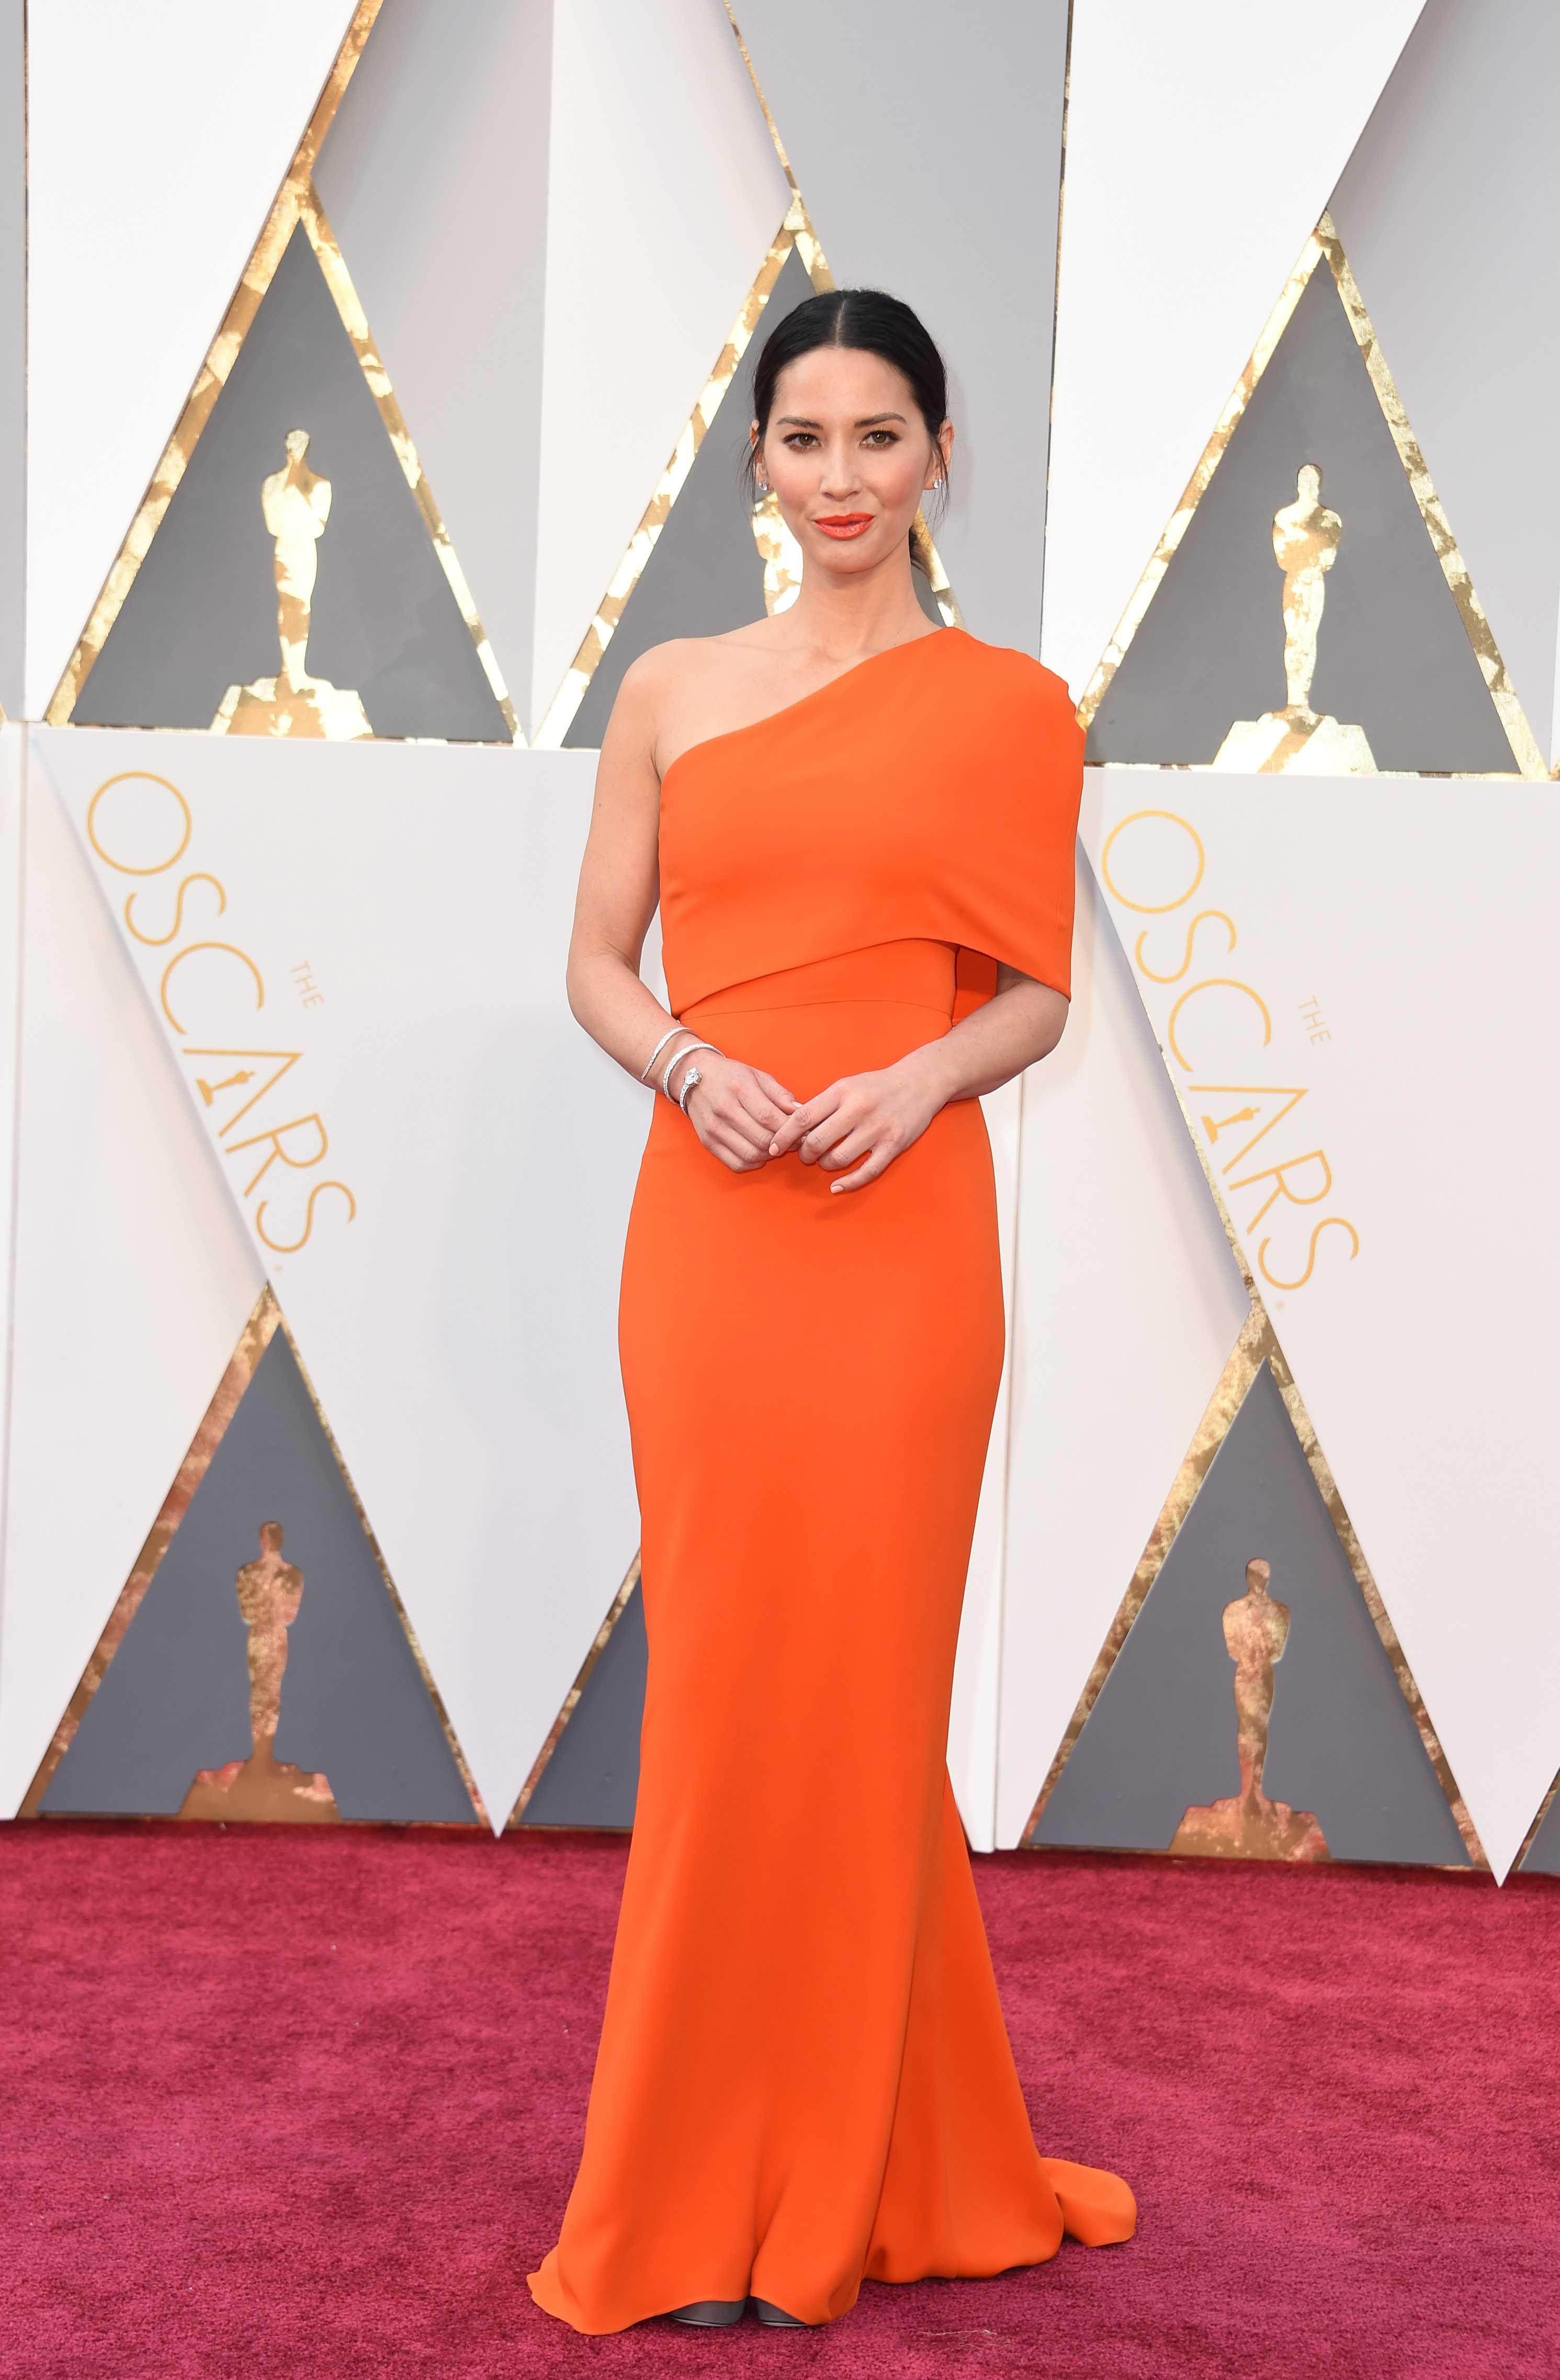 Olivia Munn attends the 88th Annual Academy Awards on Feb. 28, 2016 in Hollywood, Calif.